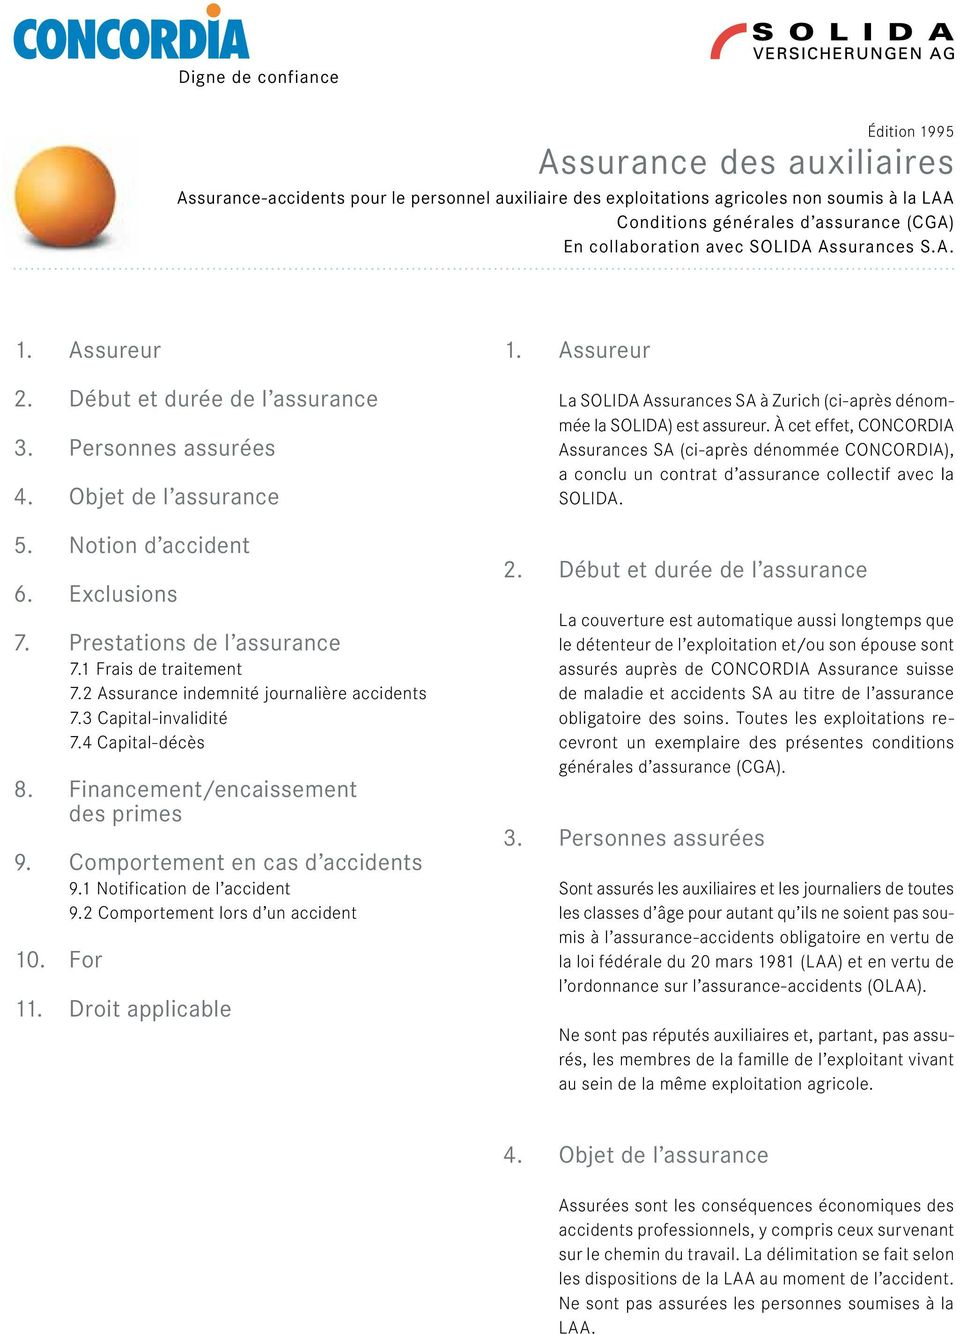 1 Frais de traitement 7.2 Assurance indemnité journalière accidents 7.3 Capital-invalidité 7.4 Capital-décès 8. Financement/encaissement des primes 9. Comportement en cas d accidents 9.